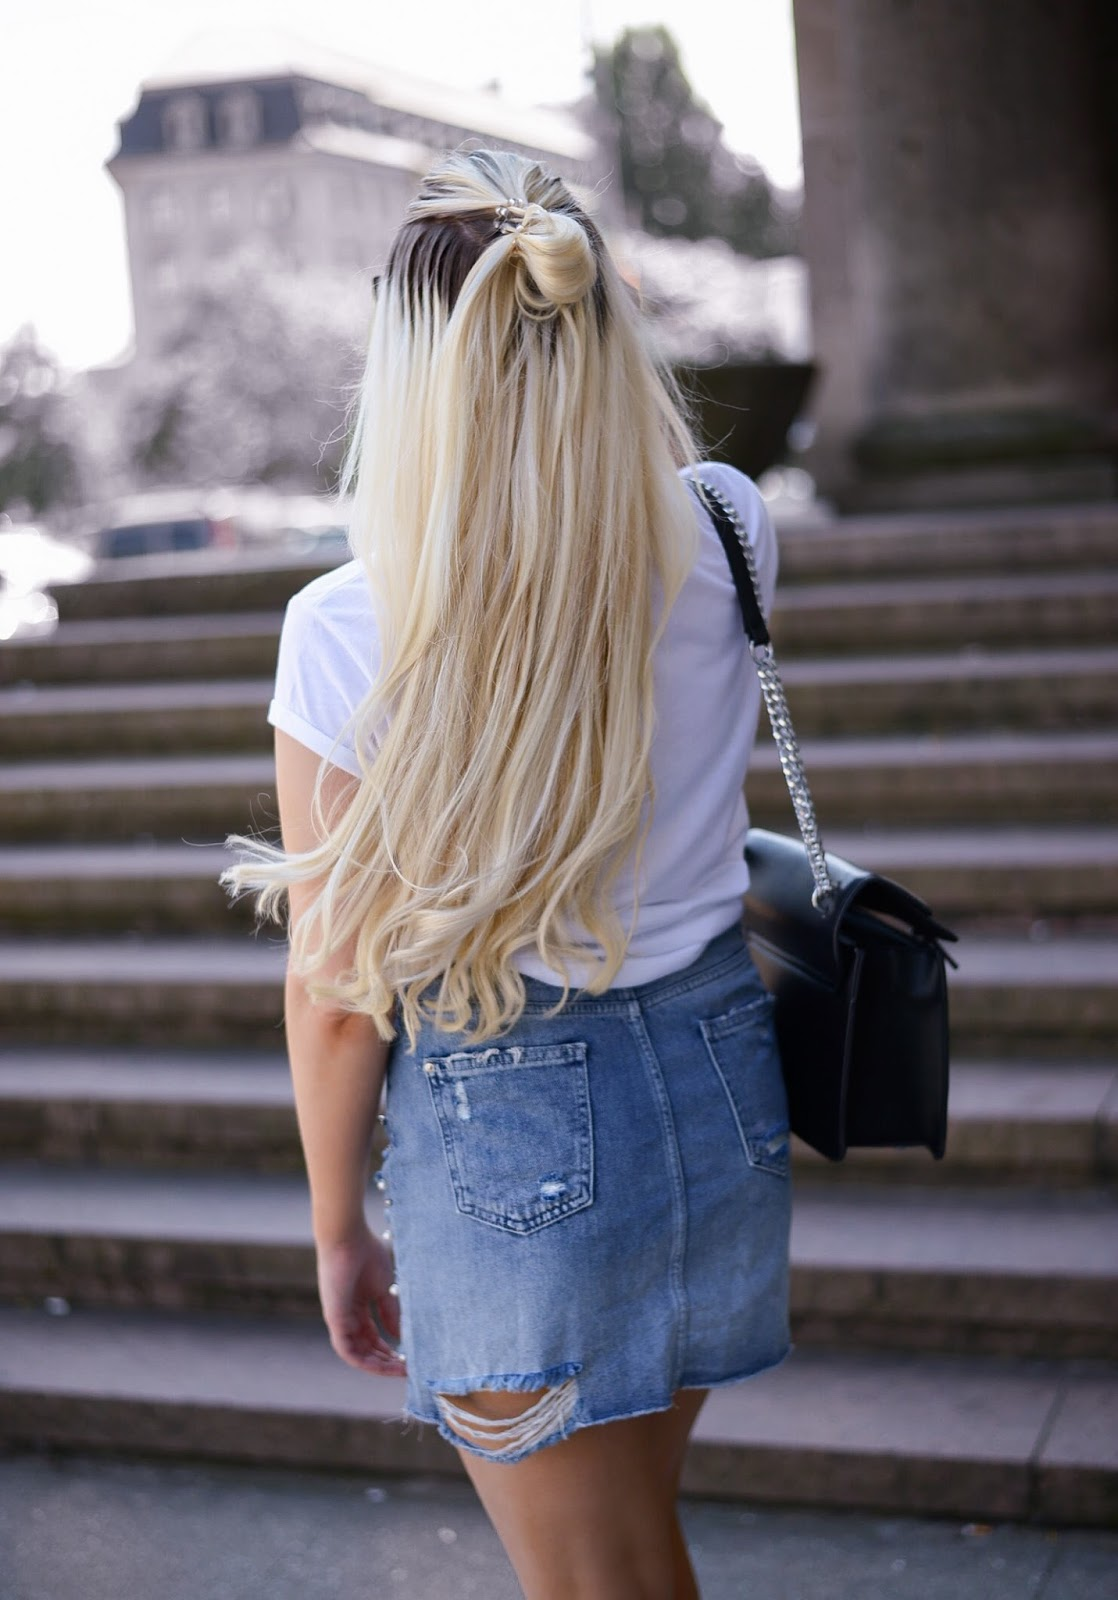 hairstyles for long hair_ripped denim skirt